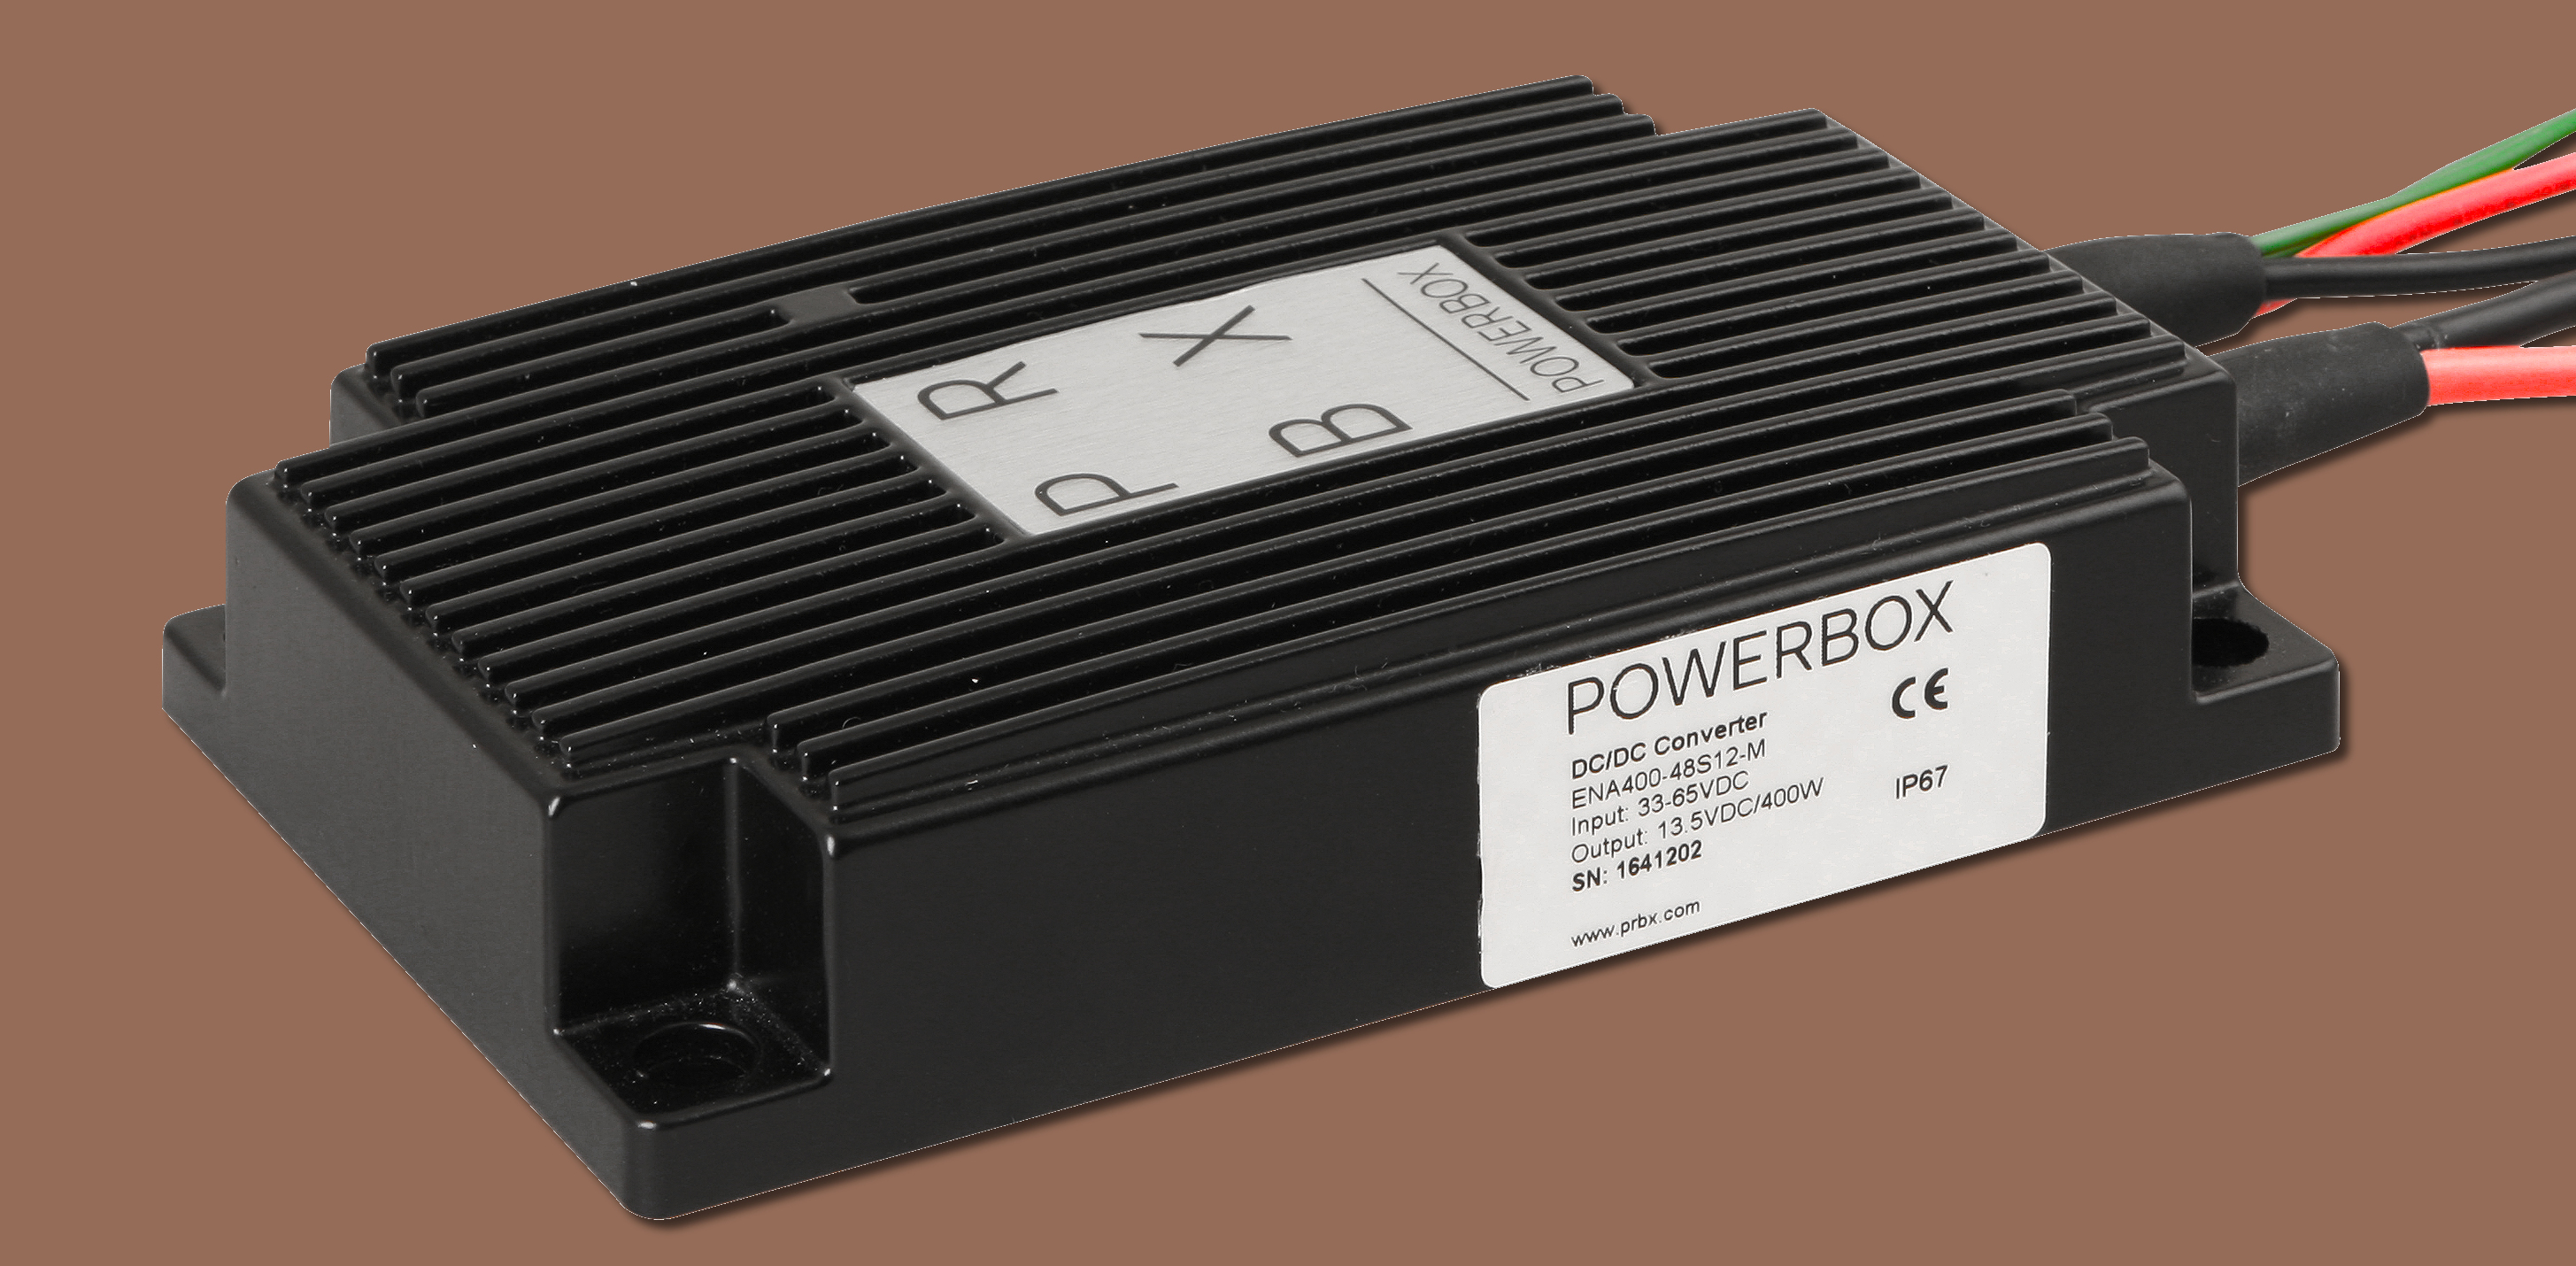 Powerbox's rugged power modules are perfect for harsh environments in extreme industrial automotive applications